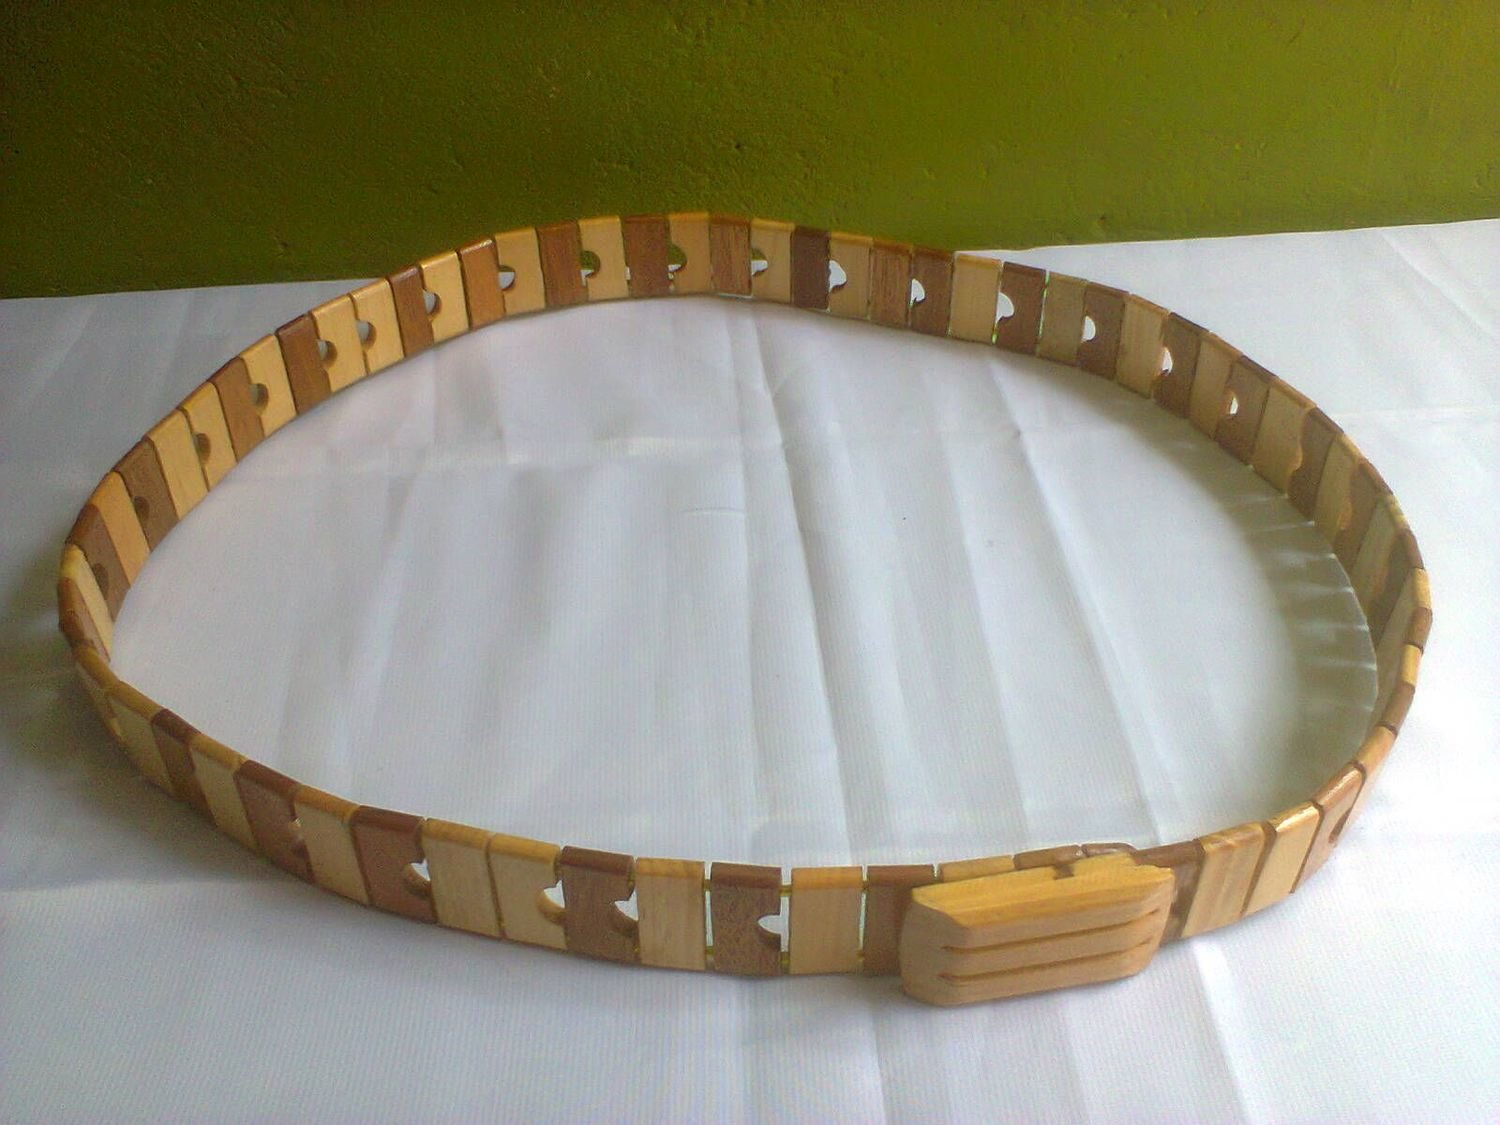 Kenya Masai Maasai wood and beads belt(UNISEX)